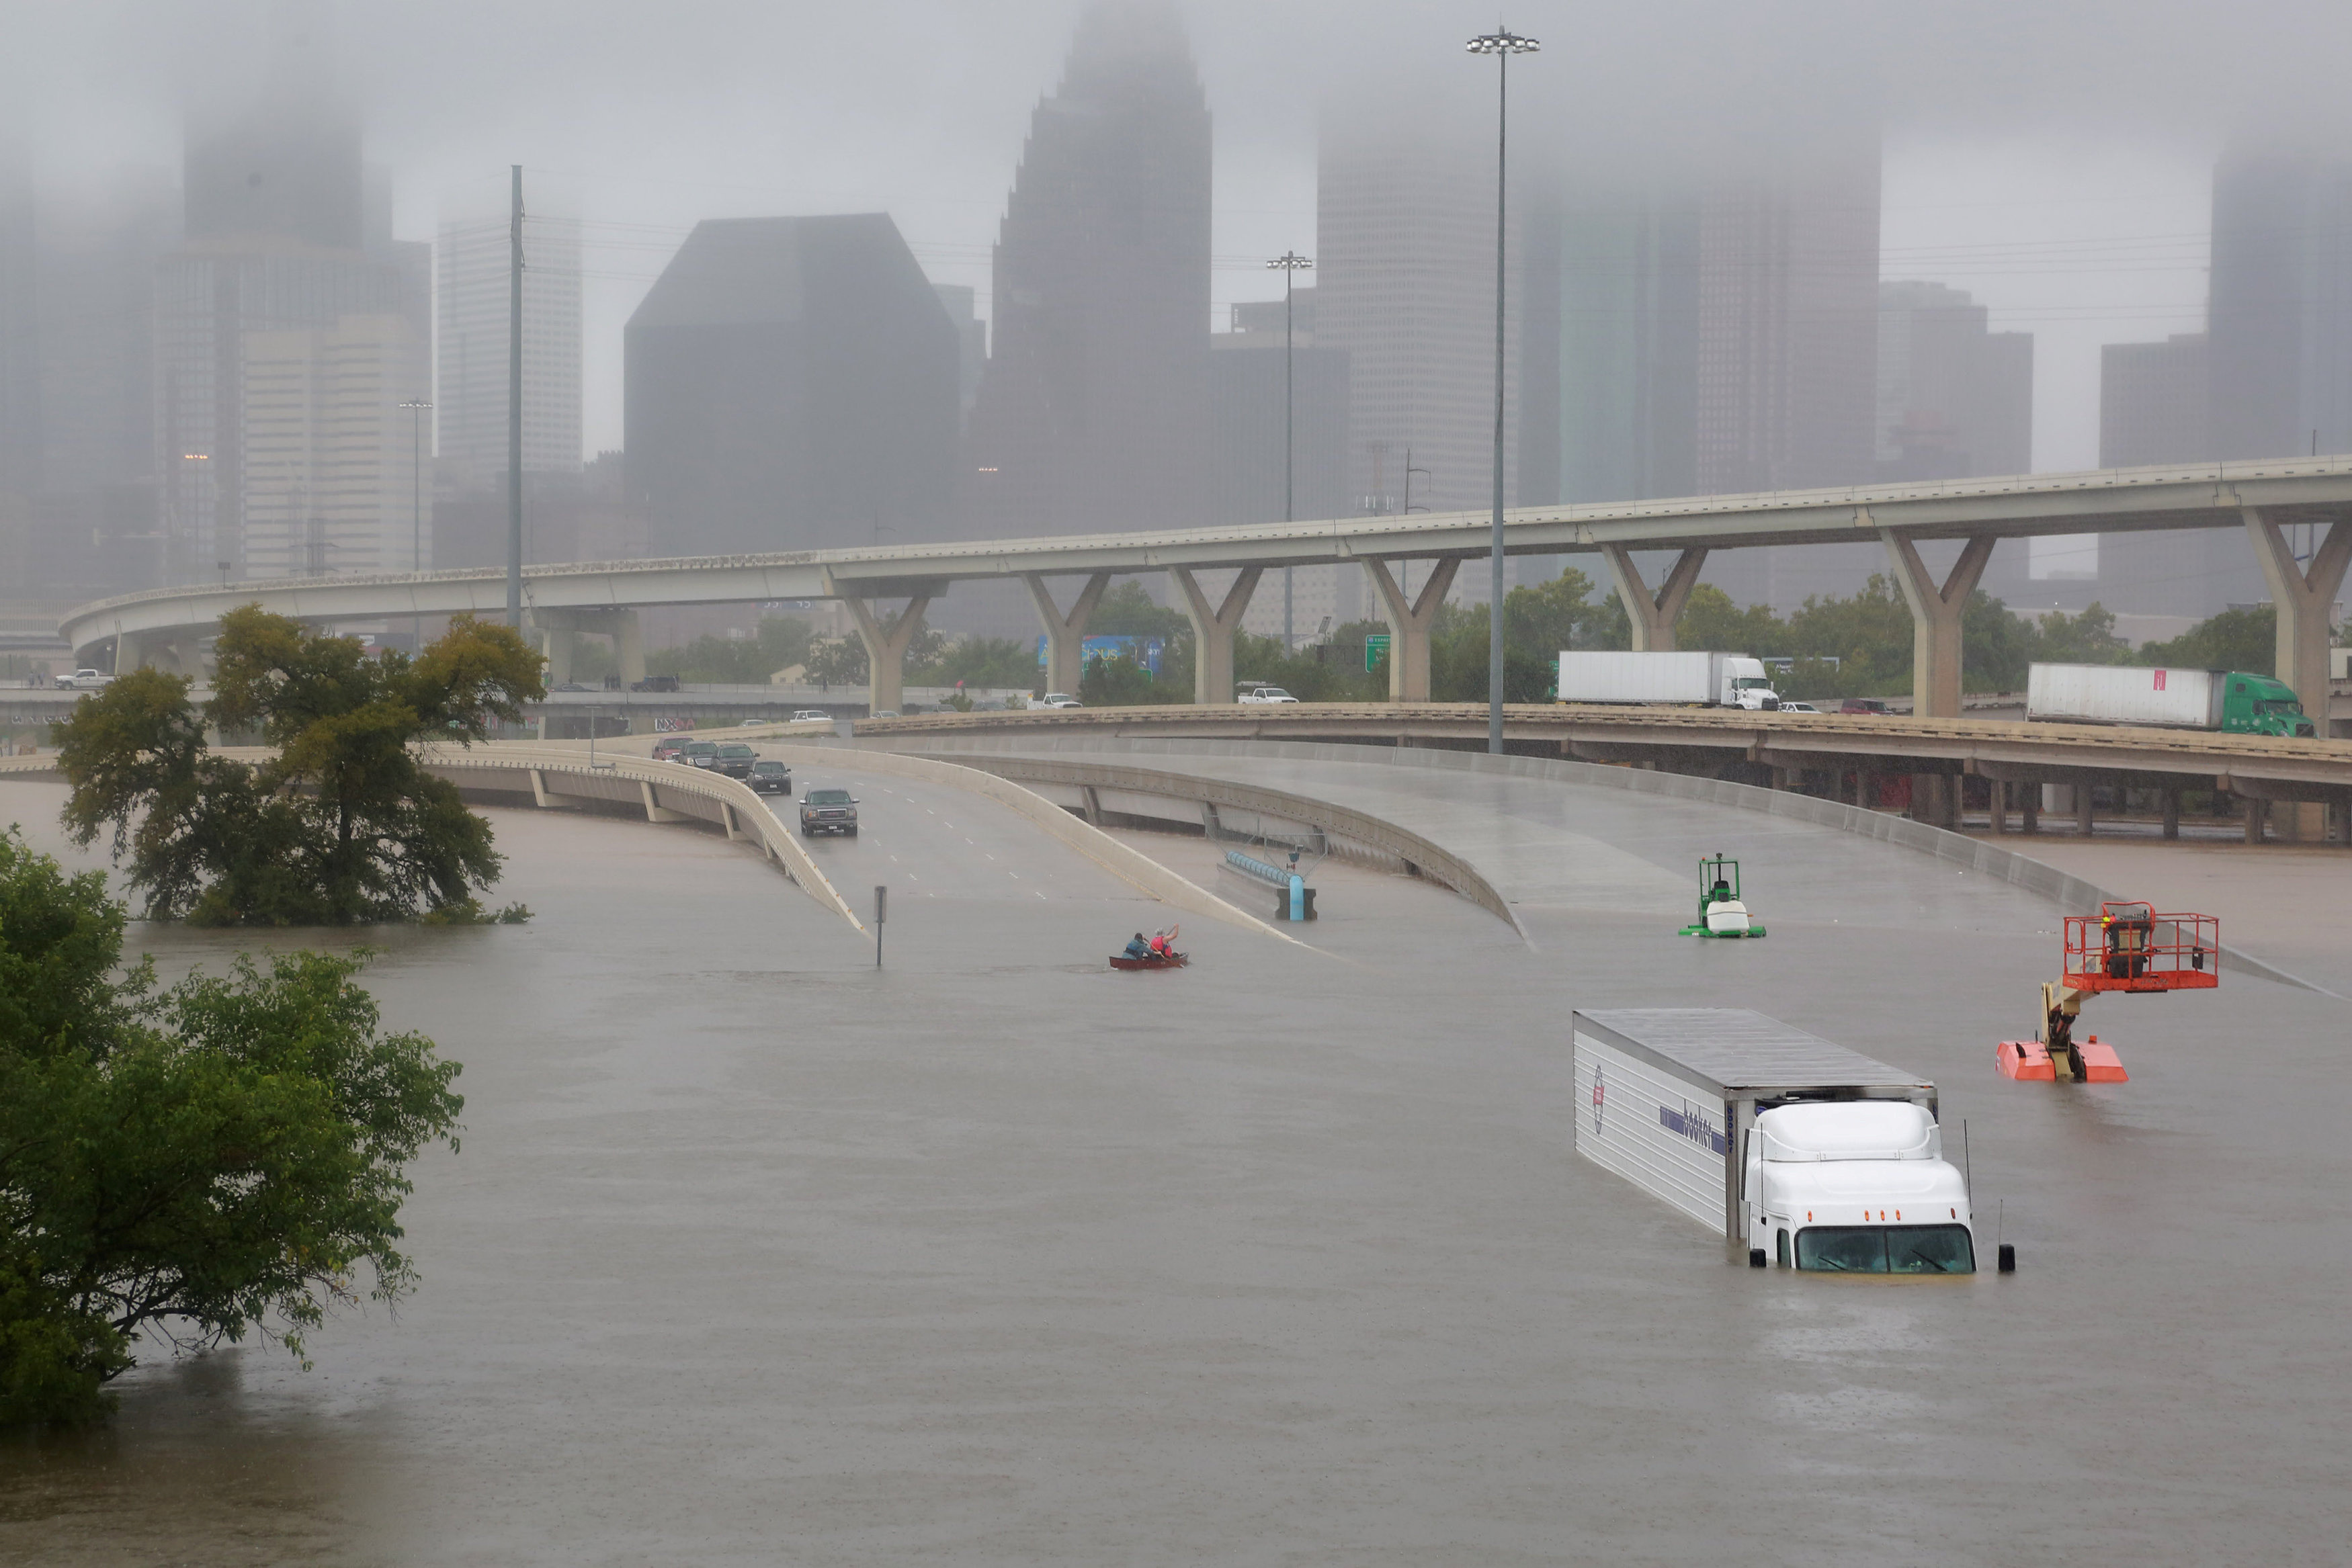 Interstate highway 45 is submerged from the effects of Hurricane Harvey seen during widespread flooding in Houston, Texas, U.S. August 27, 2017. REUTERS/Richard Carson     TPX IMAGES OF THE DAY - RC1BA1656450